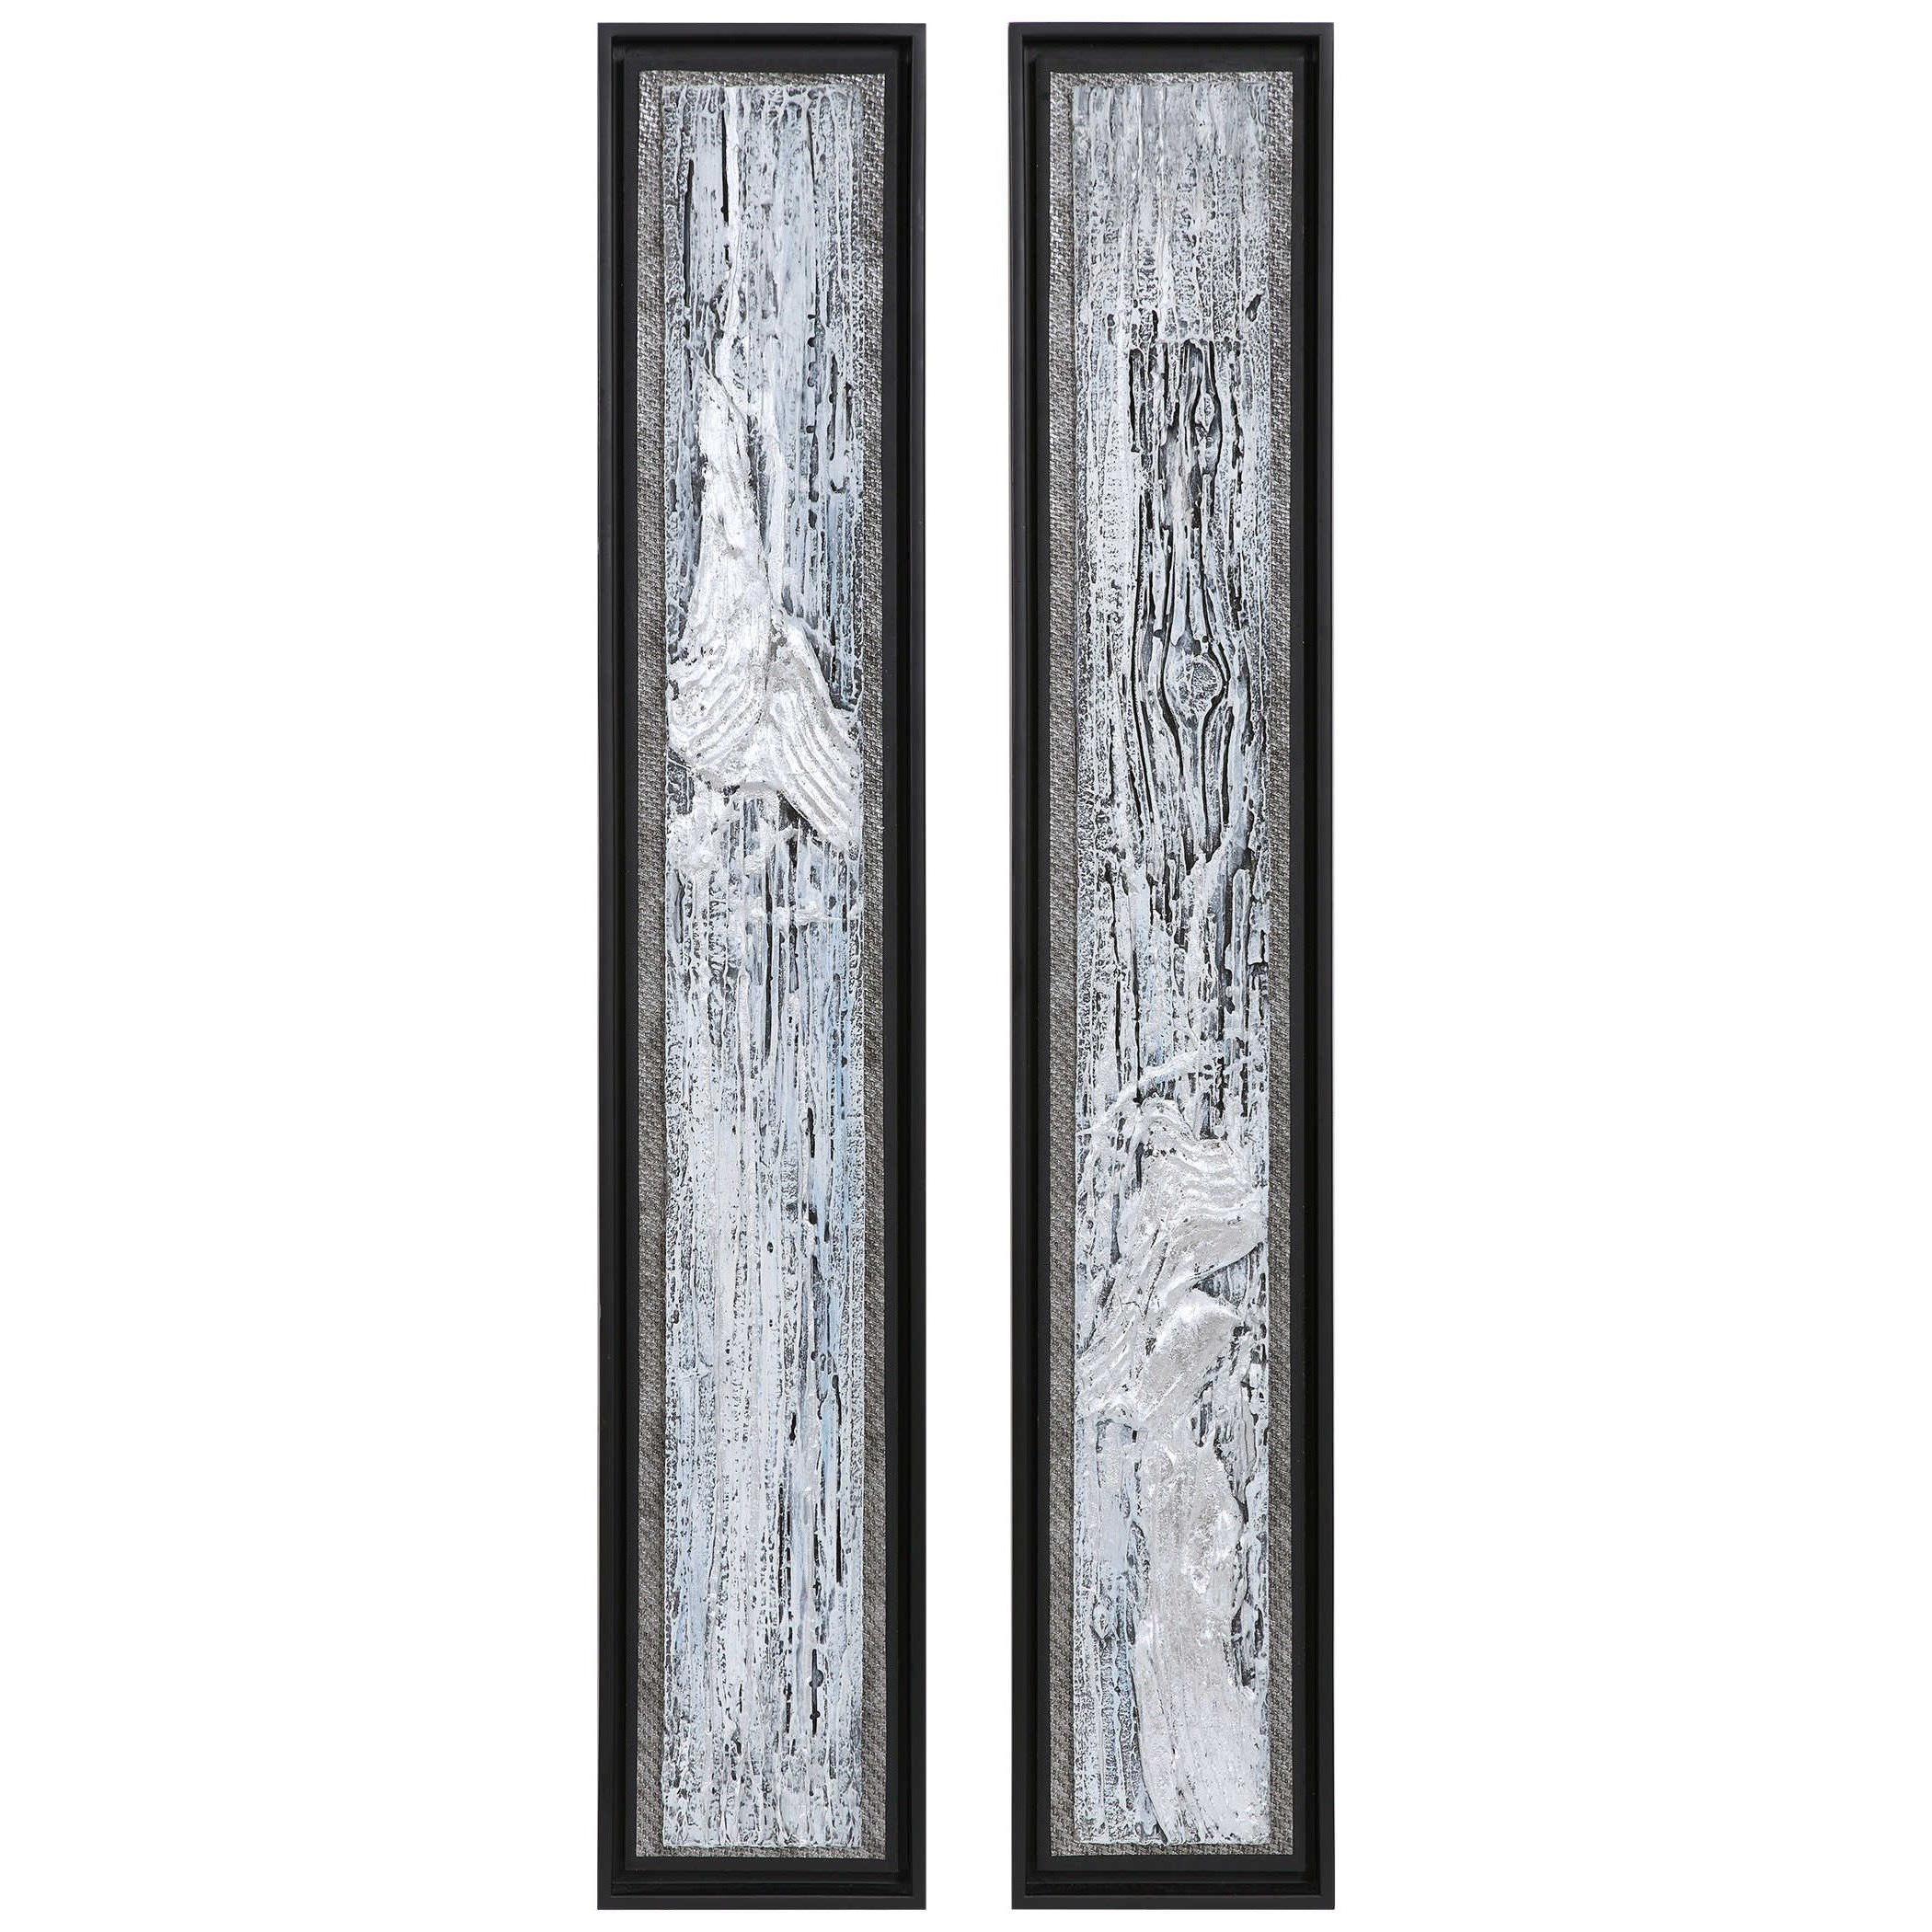 Art Silver Lining Textured Abstract Art, S/2 by Uttermost at Mueller Furniture